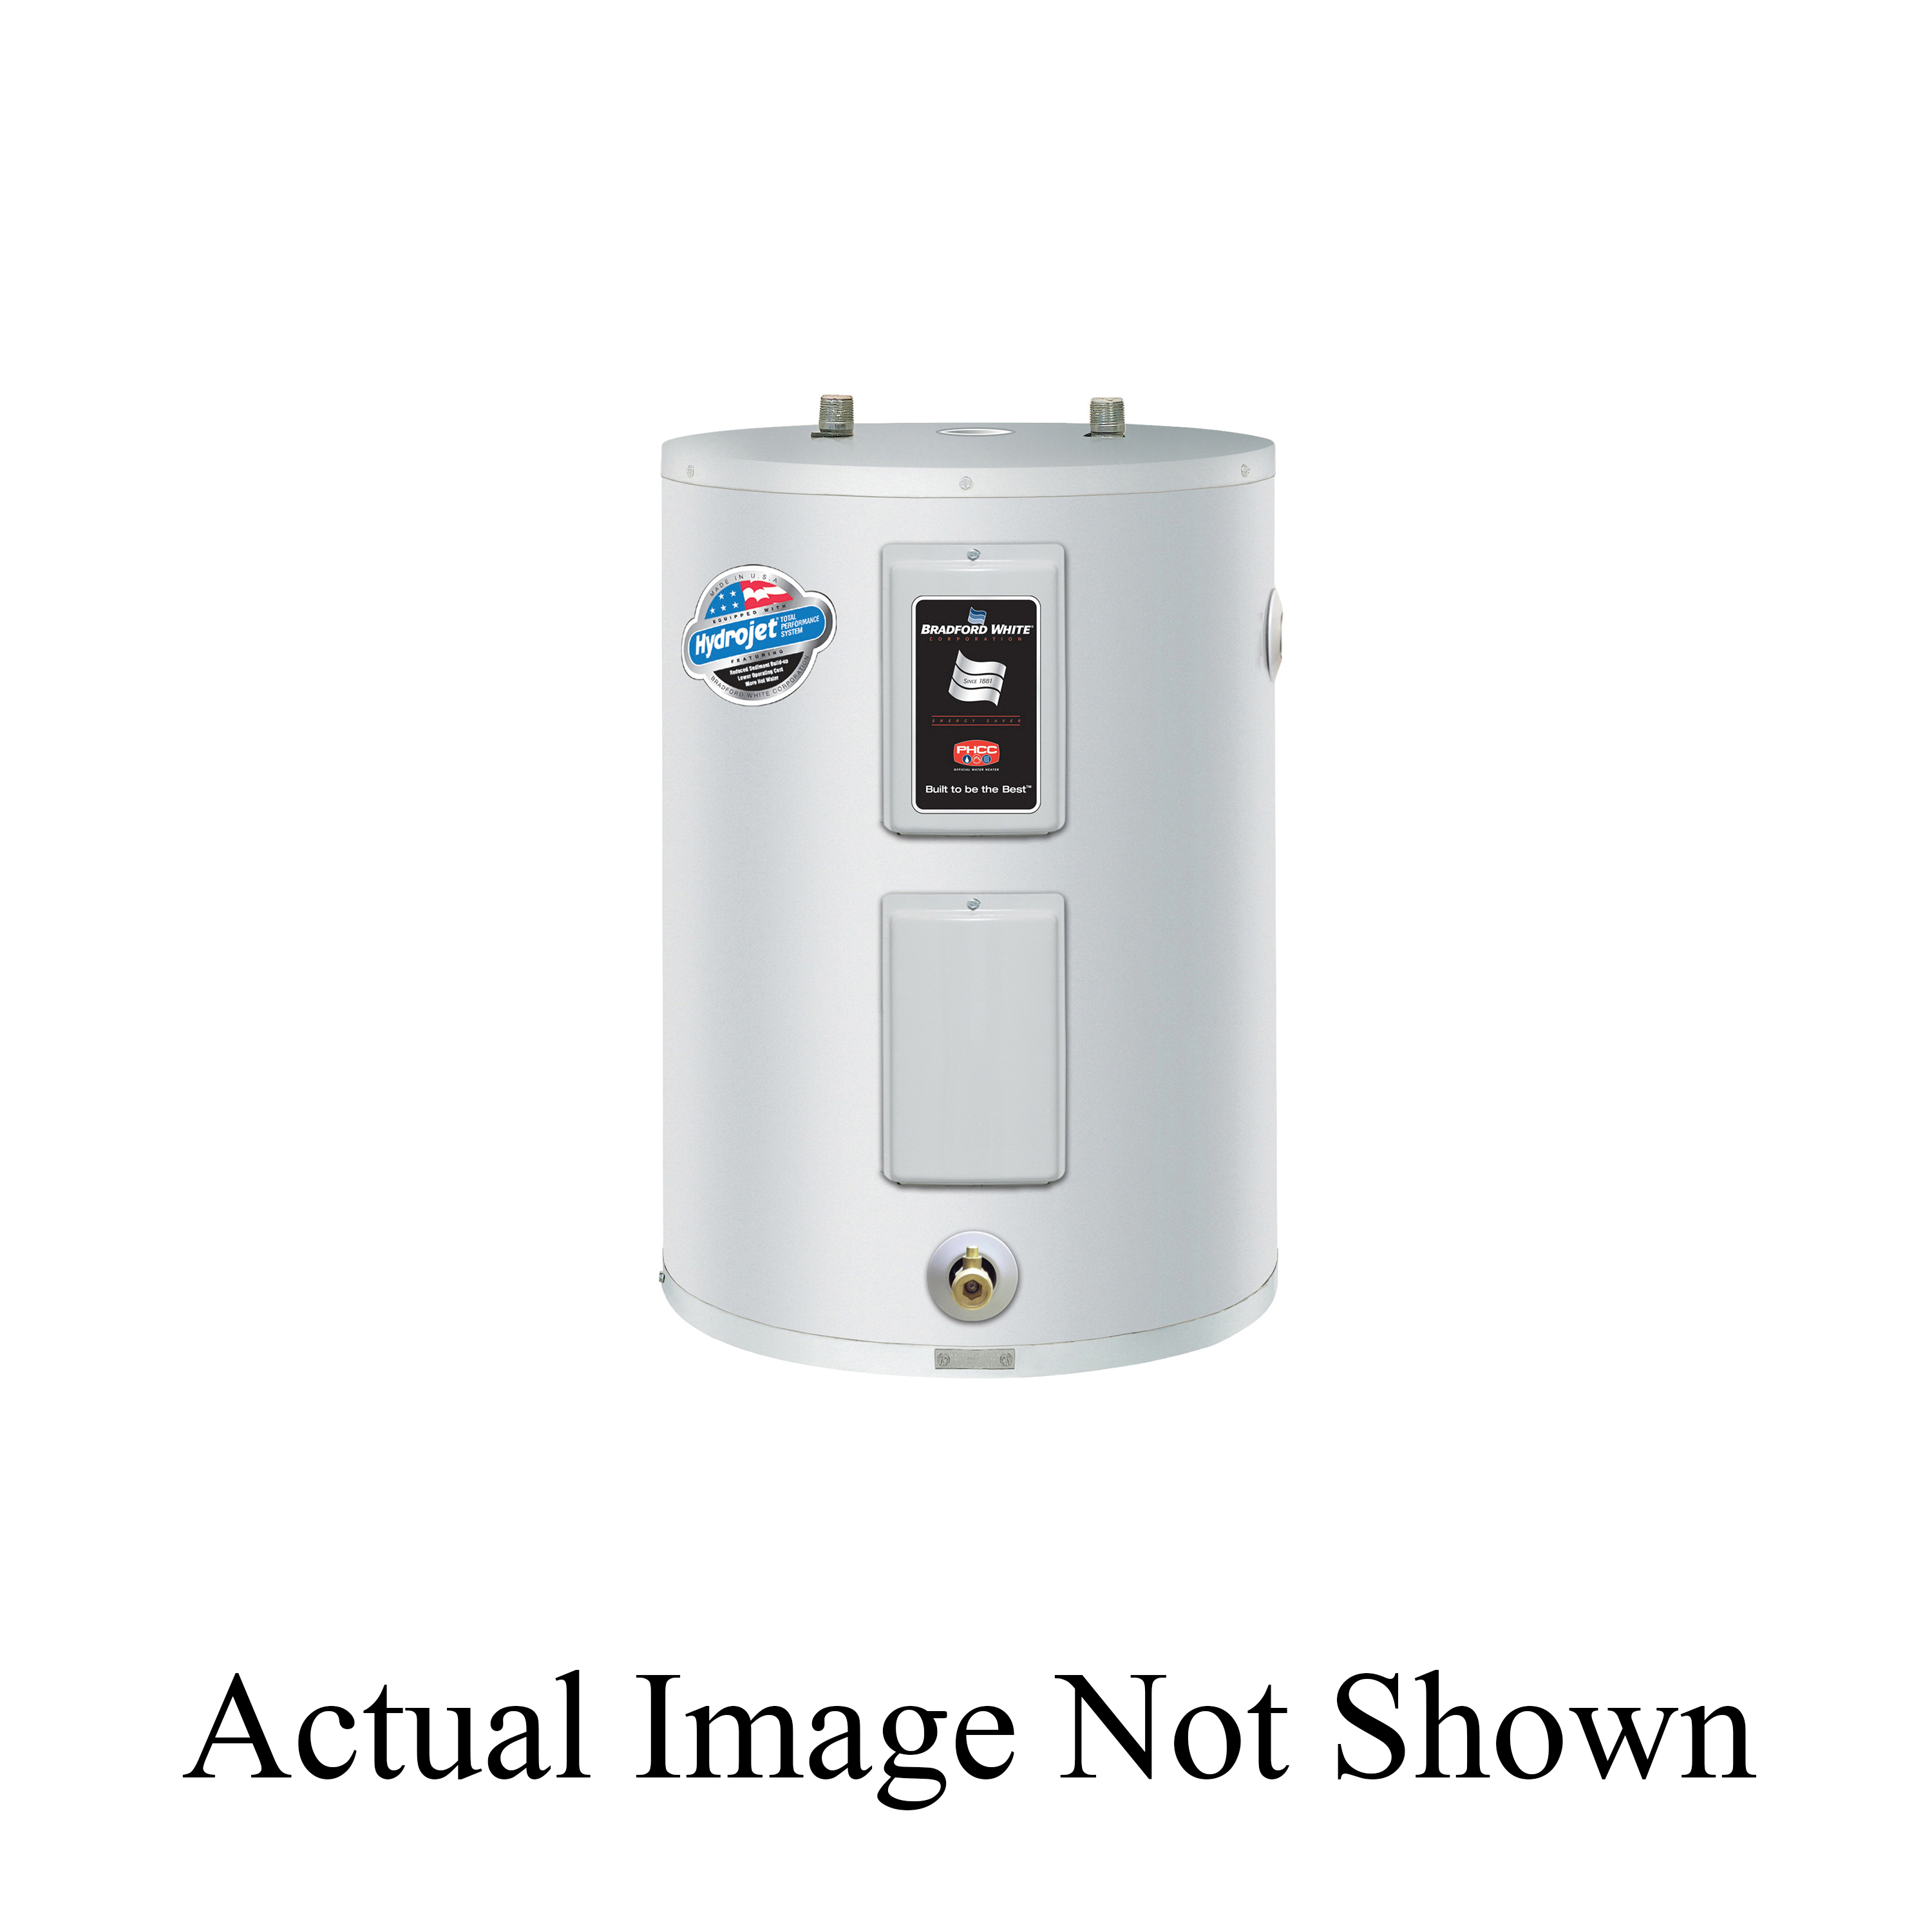 Products Residential Electric Utility 19 Gallons Heaters Parts Plumbing Water